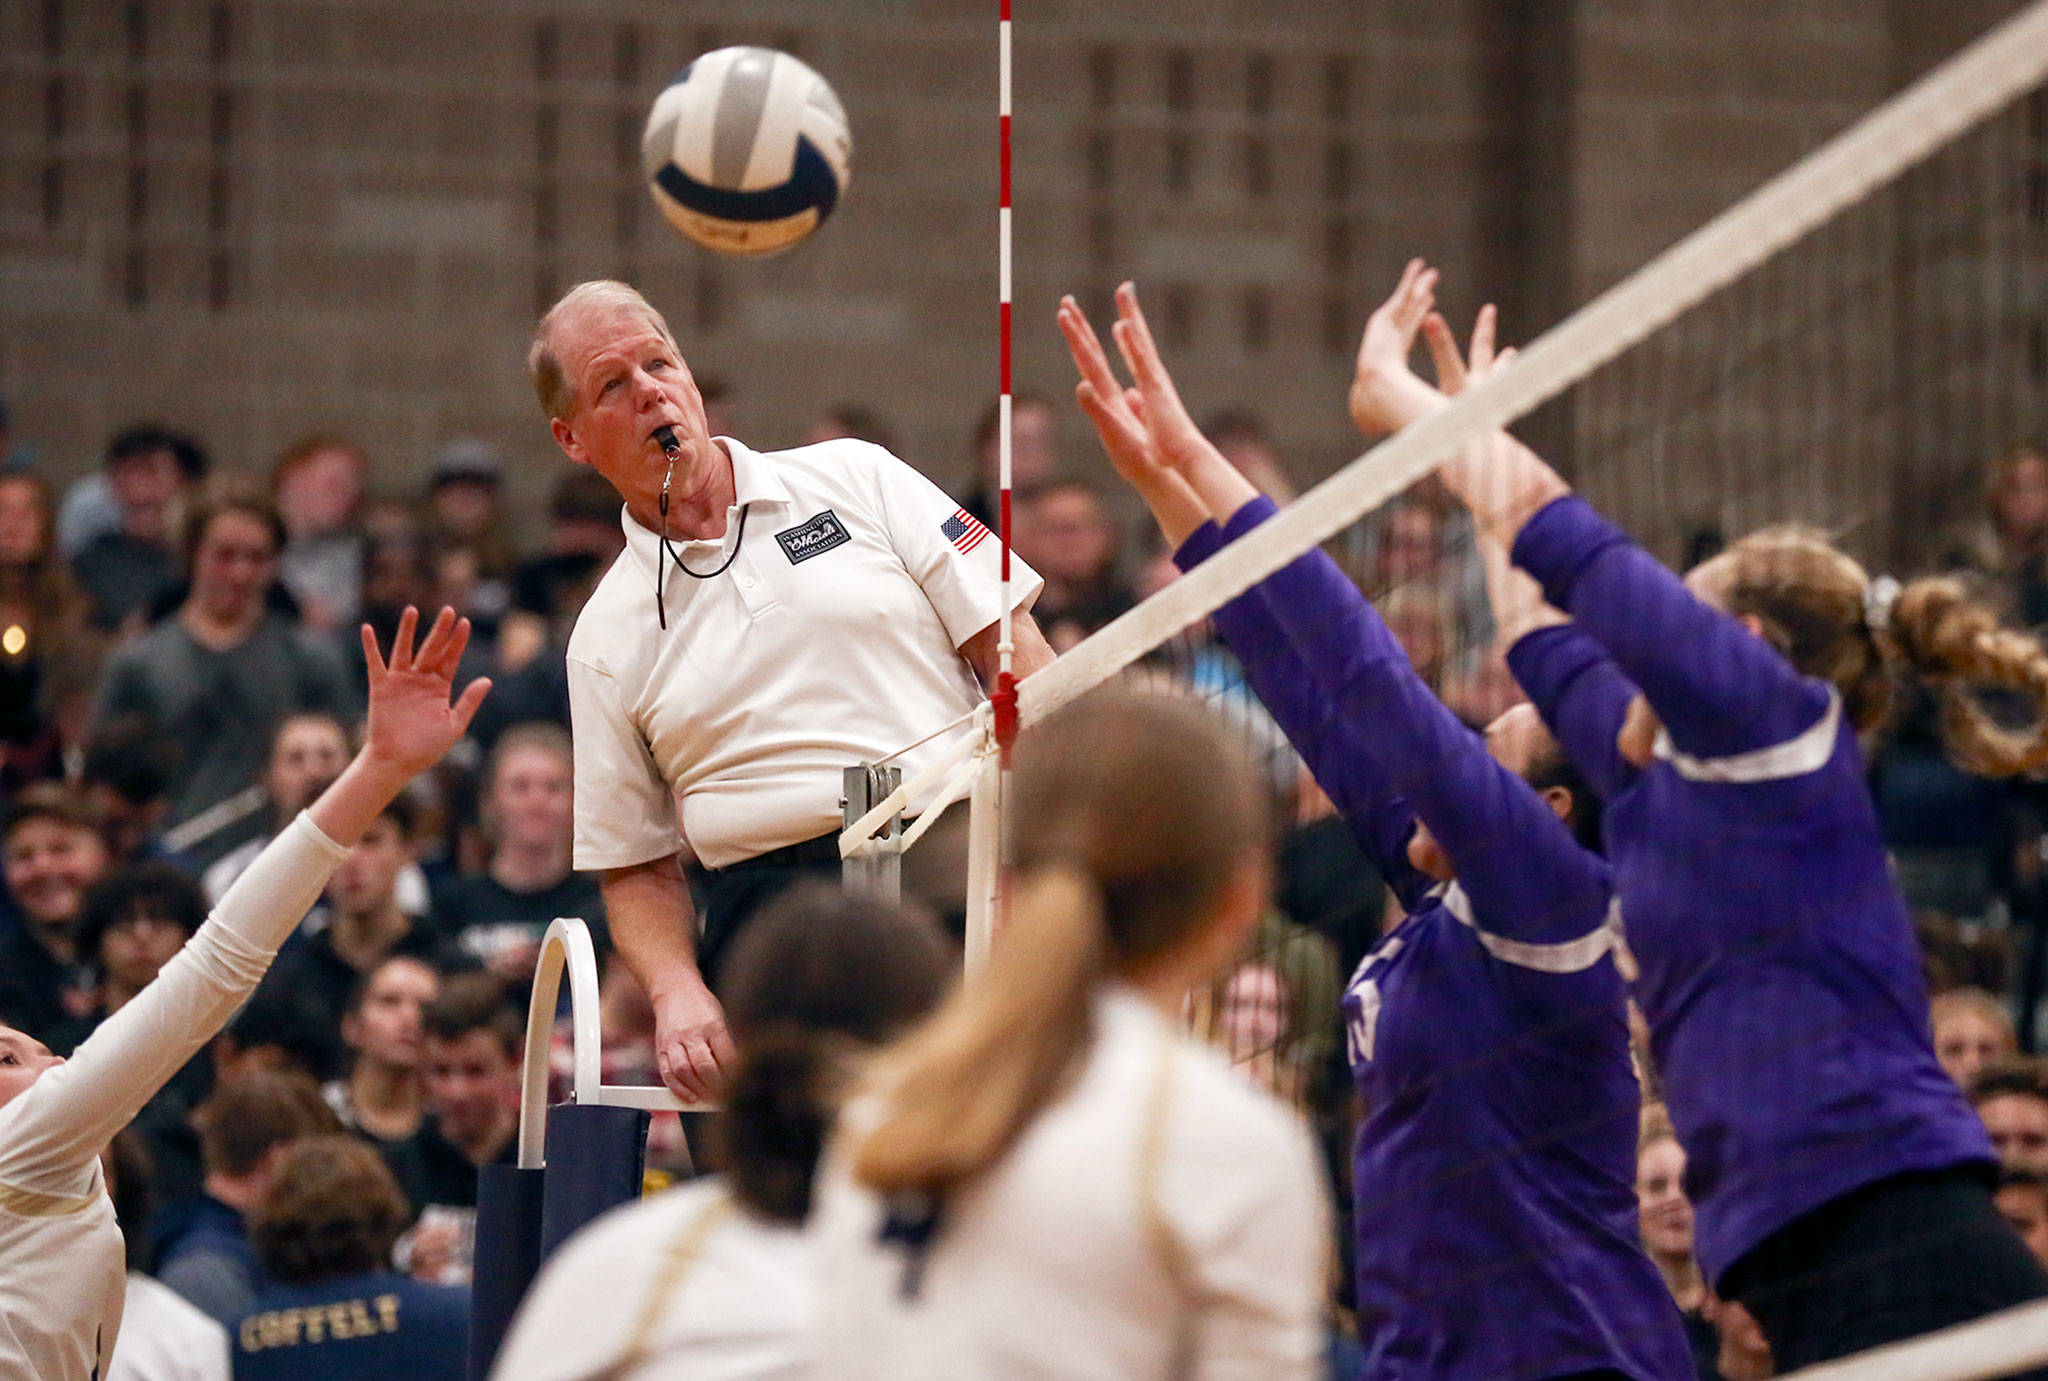 Volleyball official Pat Kaminske tracks play during a Wesco 3A/2A match between Oak Harbor and Arlington on Oct. 24 in Arlington. (Kevin Clark / The Herald)